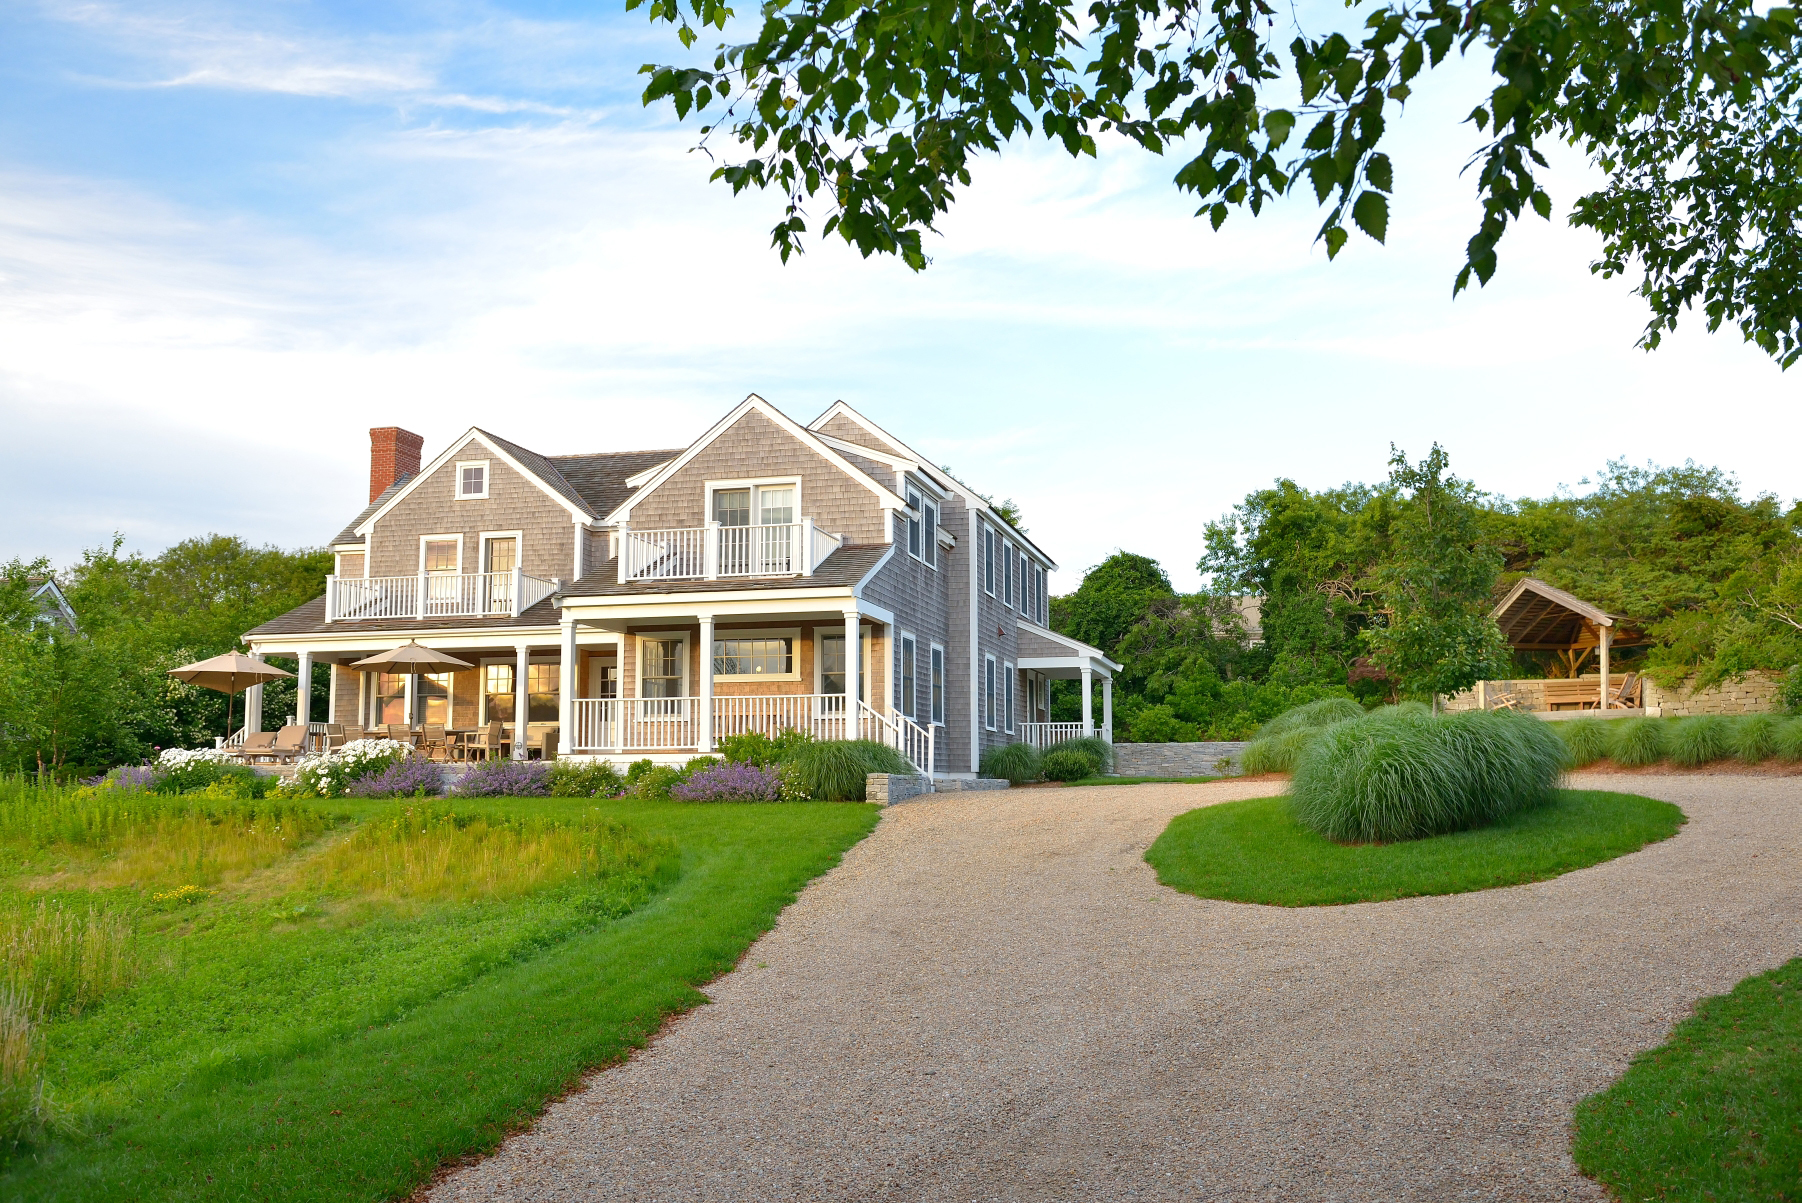 Villa per Vendita alle ore Beautifully Situated Home 91 West Chester Street Nantucket, Massachusetts, 02554 Stati Uniti